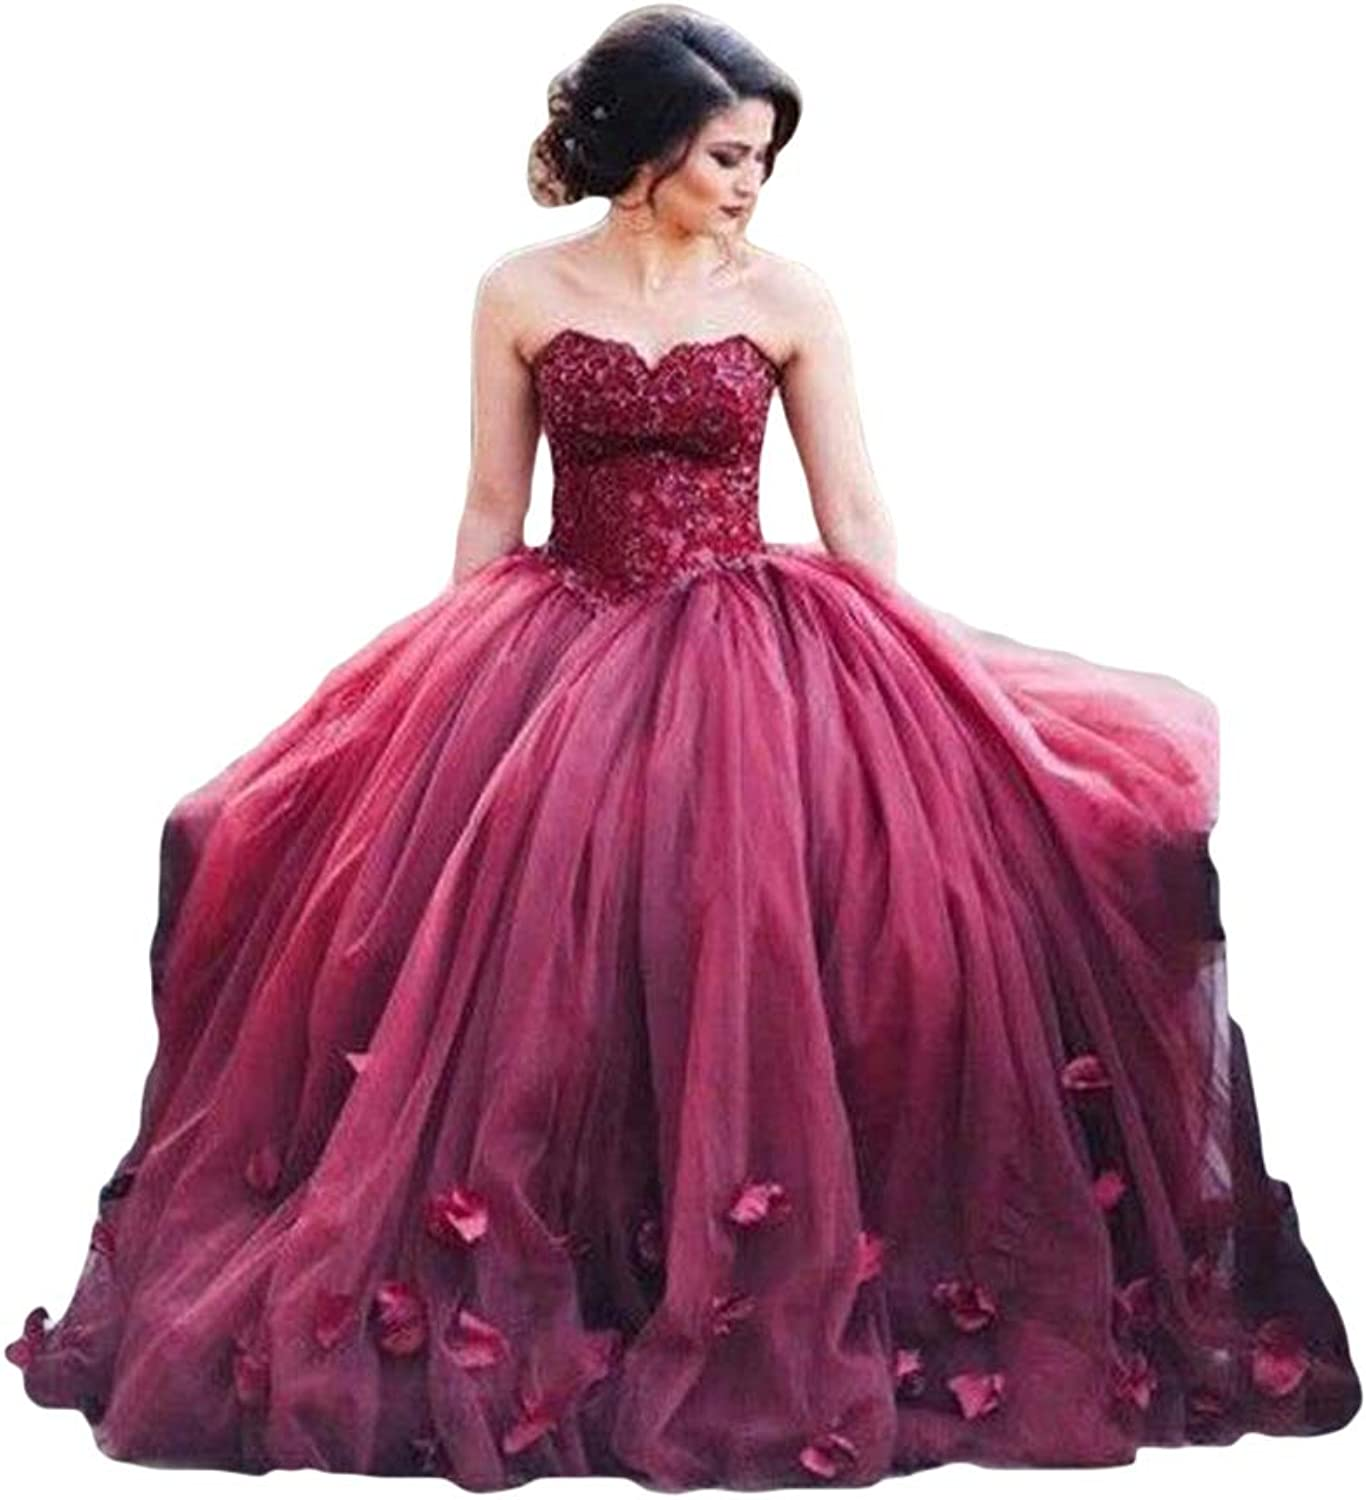 Liyuke Ball Gown Prom Dress Sweetheart Lace Evening Gowns Sweet 16 Dresses